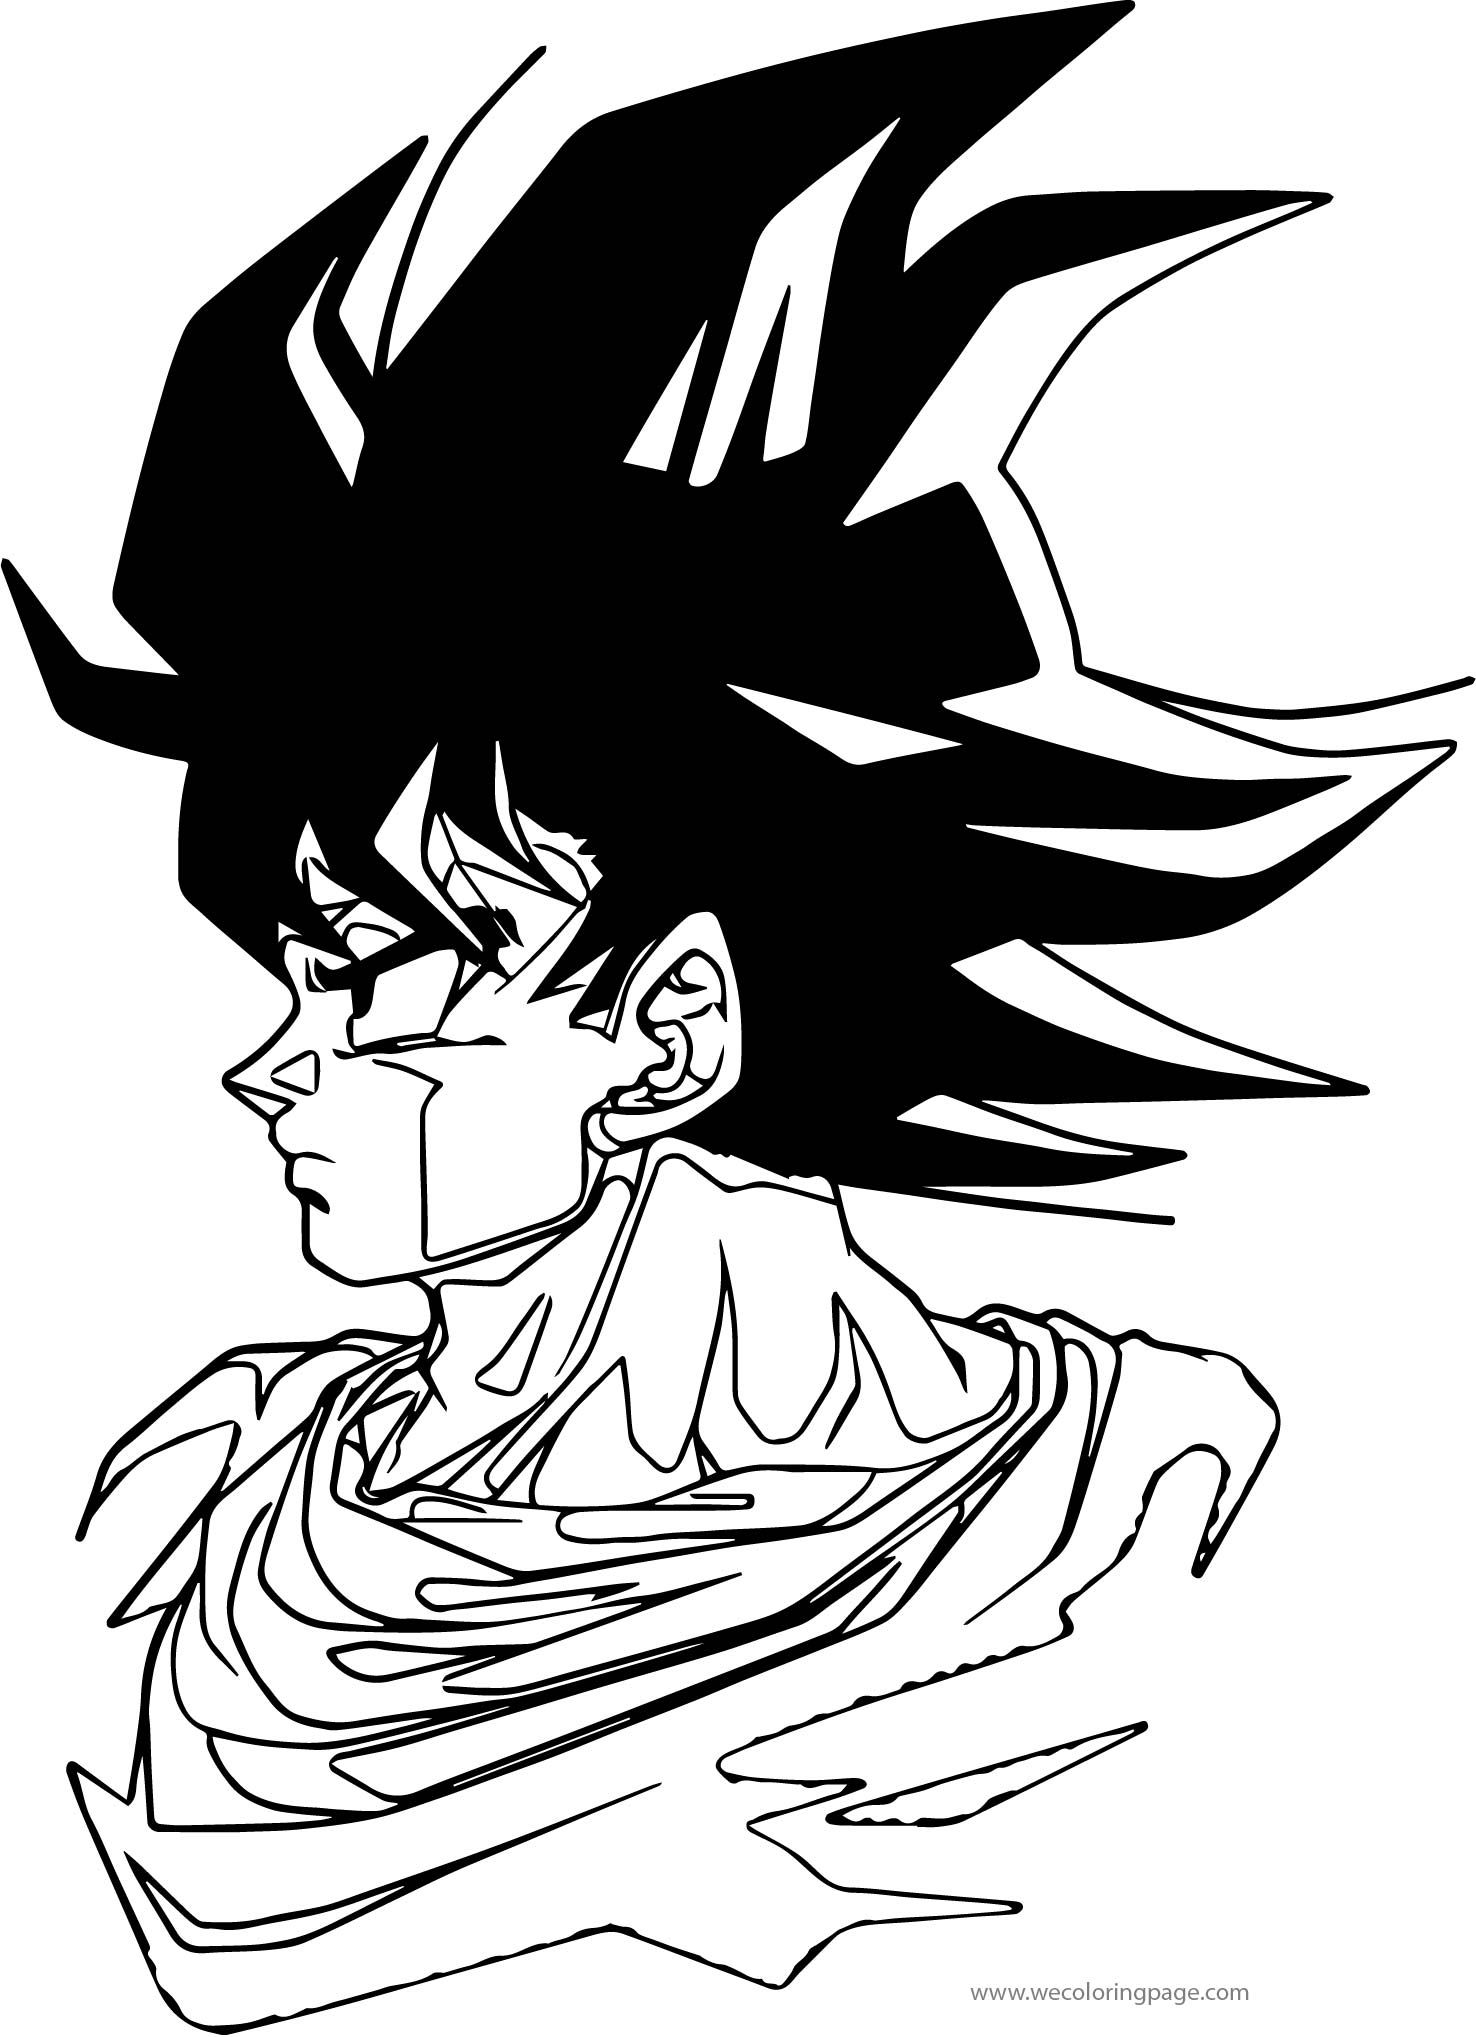 Pin By Wecoloringpage Coloring Pages On Wecoloringpage Coloring Pages For Boys Coloring Pages Goku